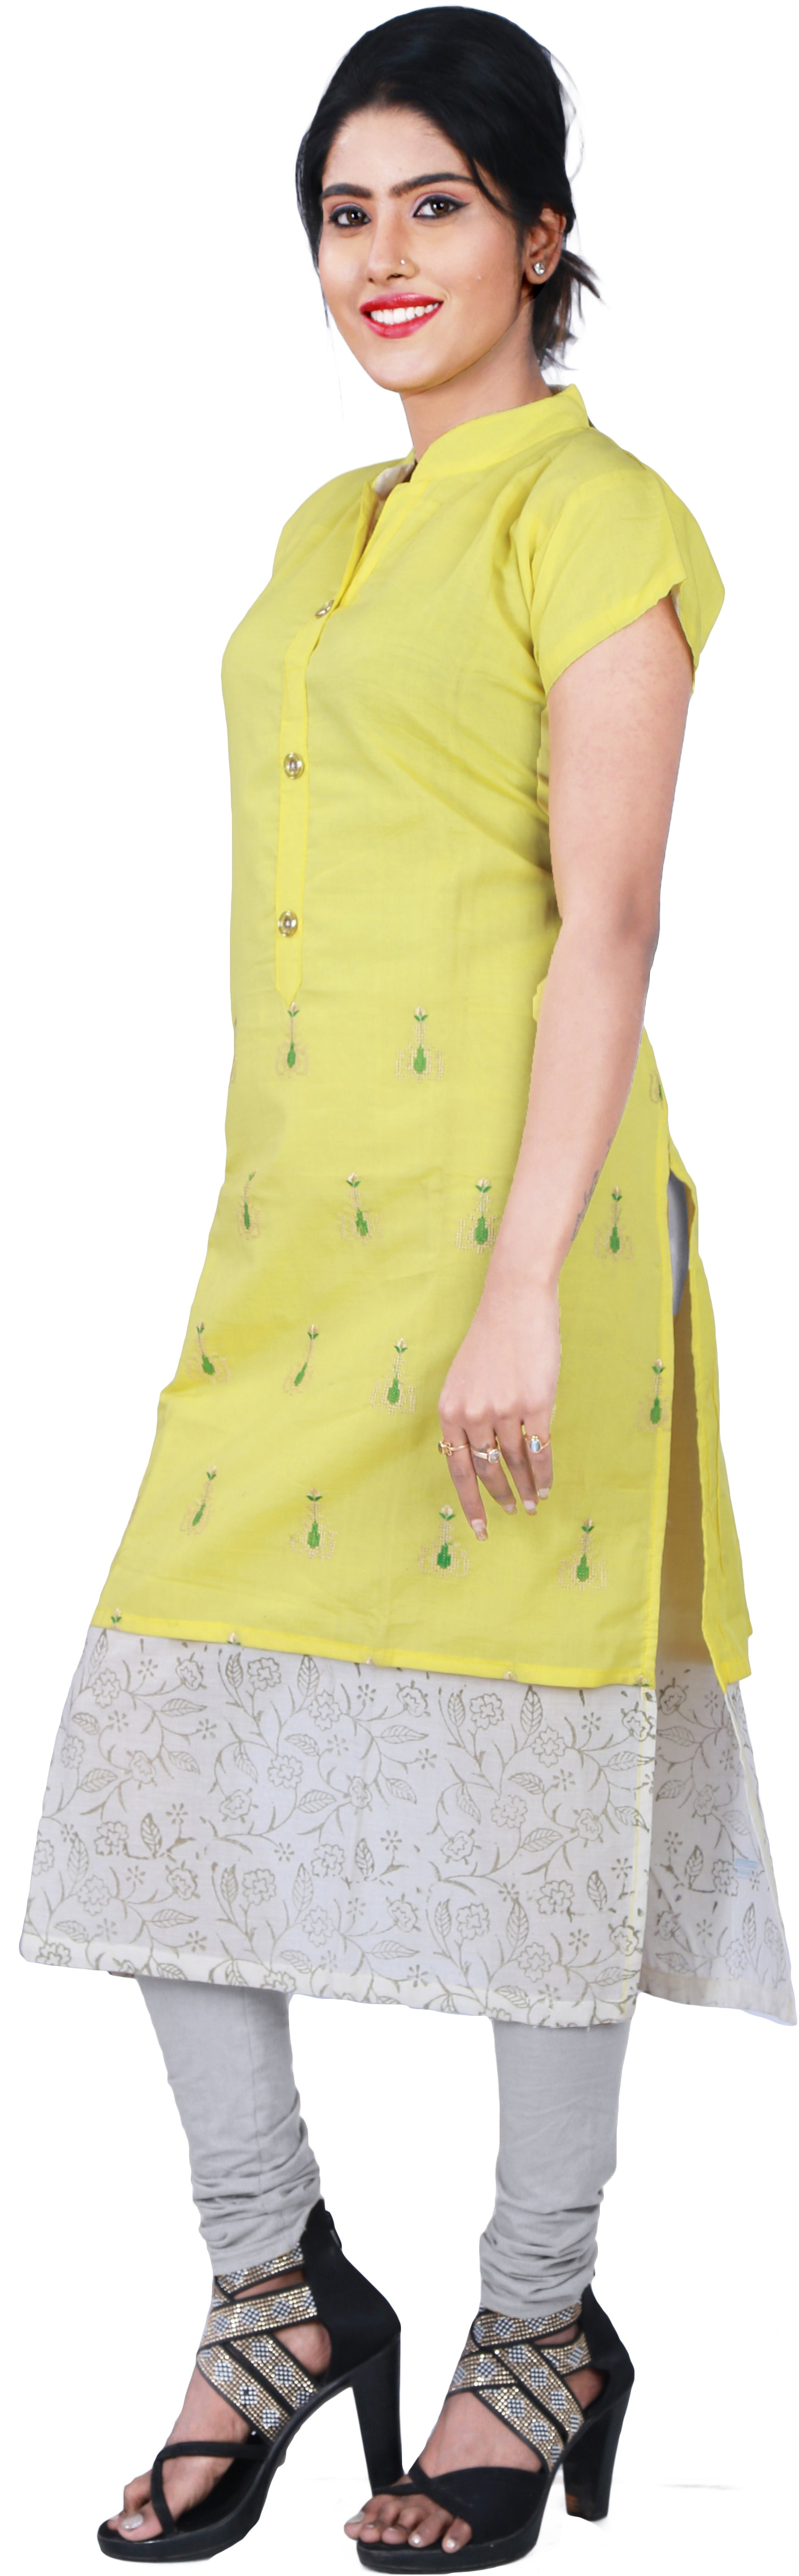 SMSAREE Yellow Designer Casual Partywear Pure Cotton Thread & Gota Hand Embroidery Work Stylish Women Kurti Kurta With Free Matching Leggings D514